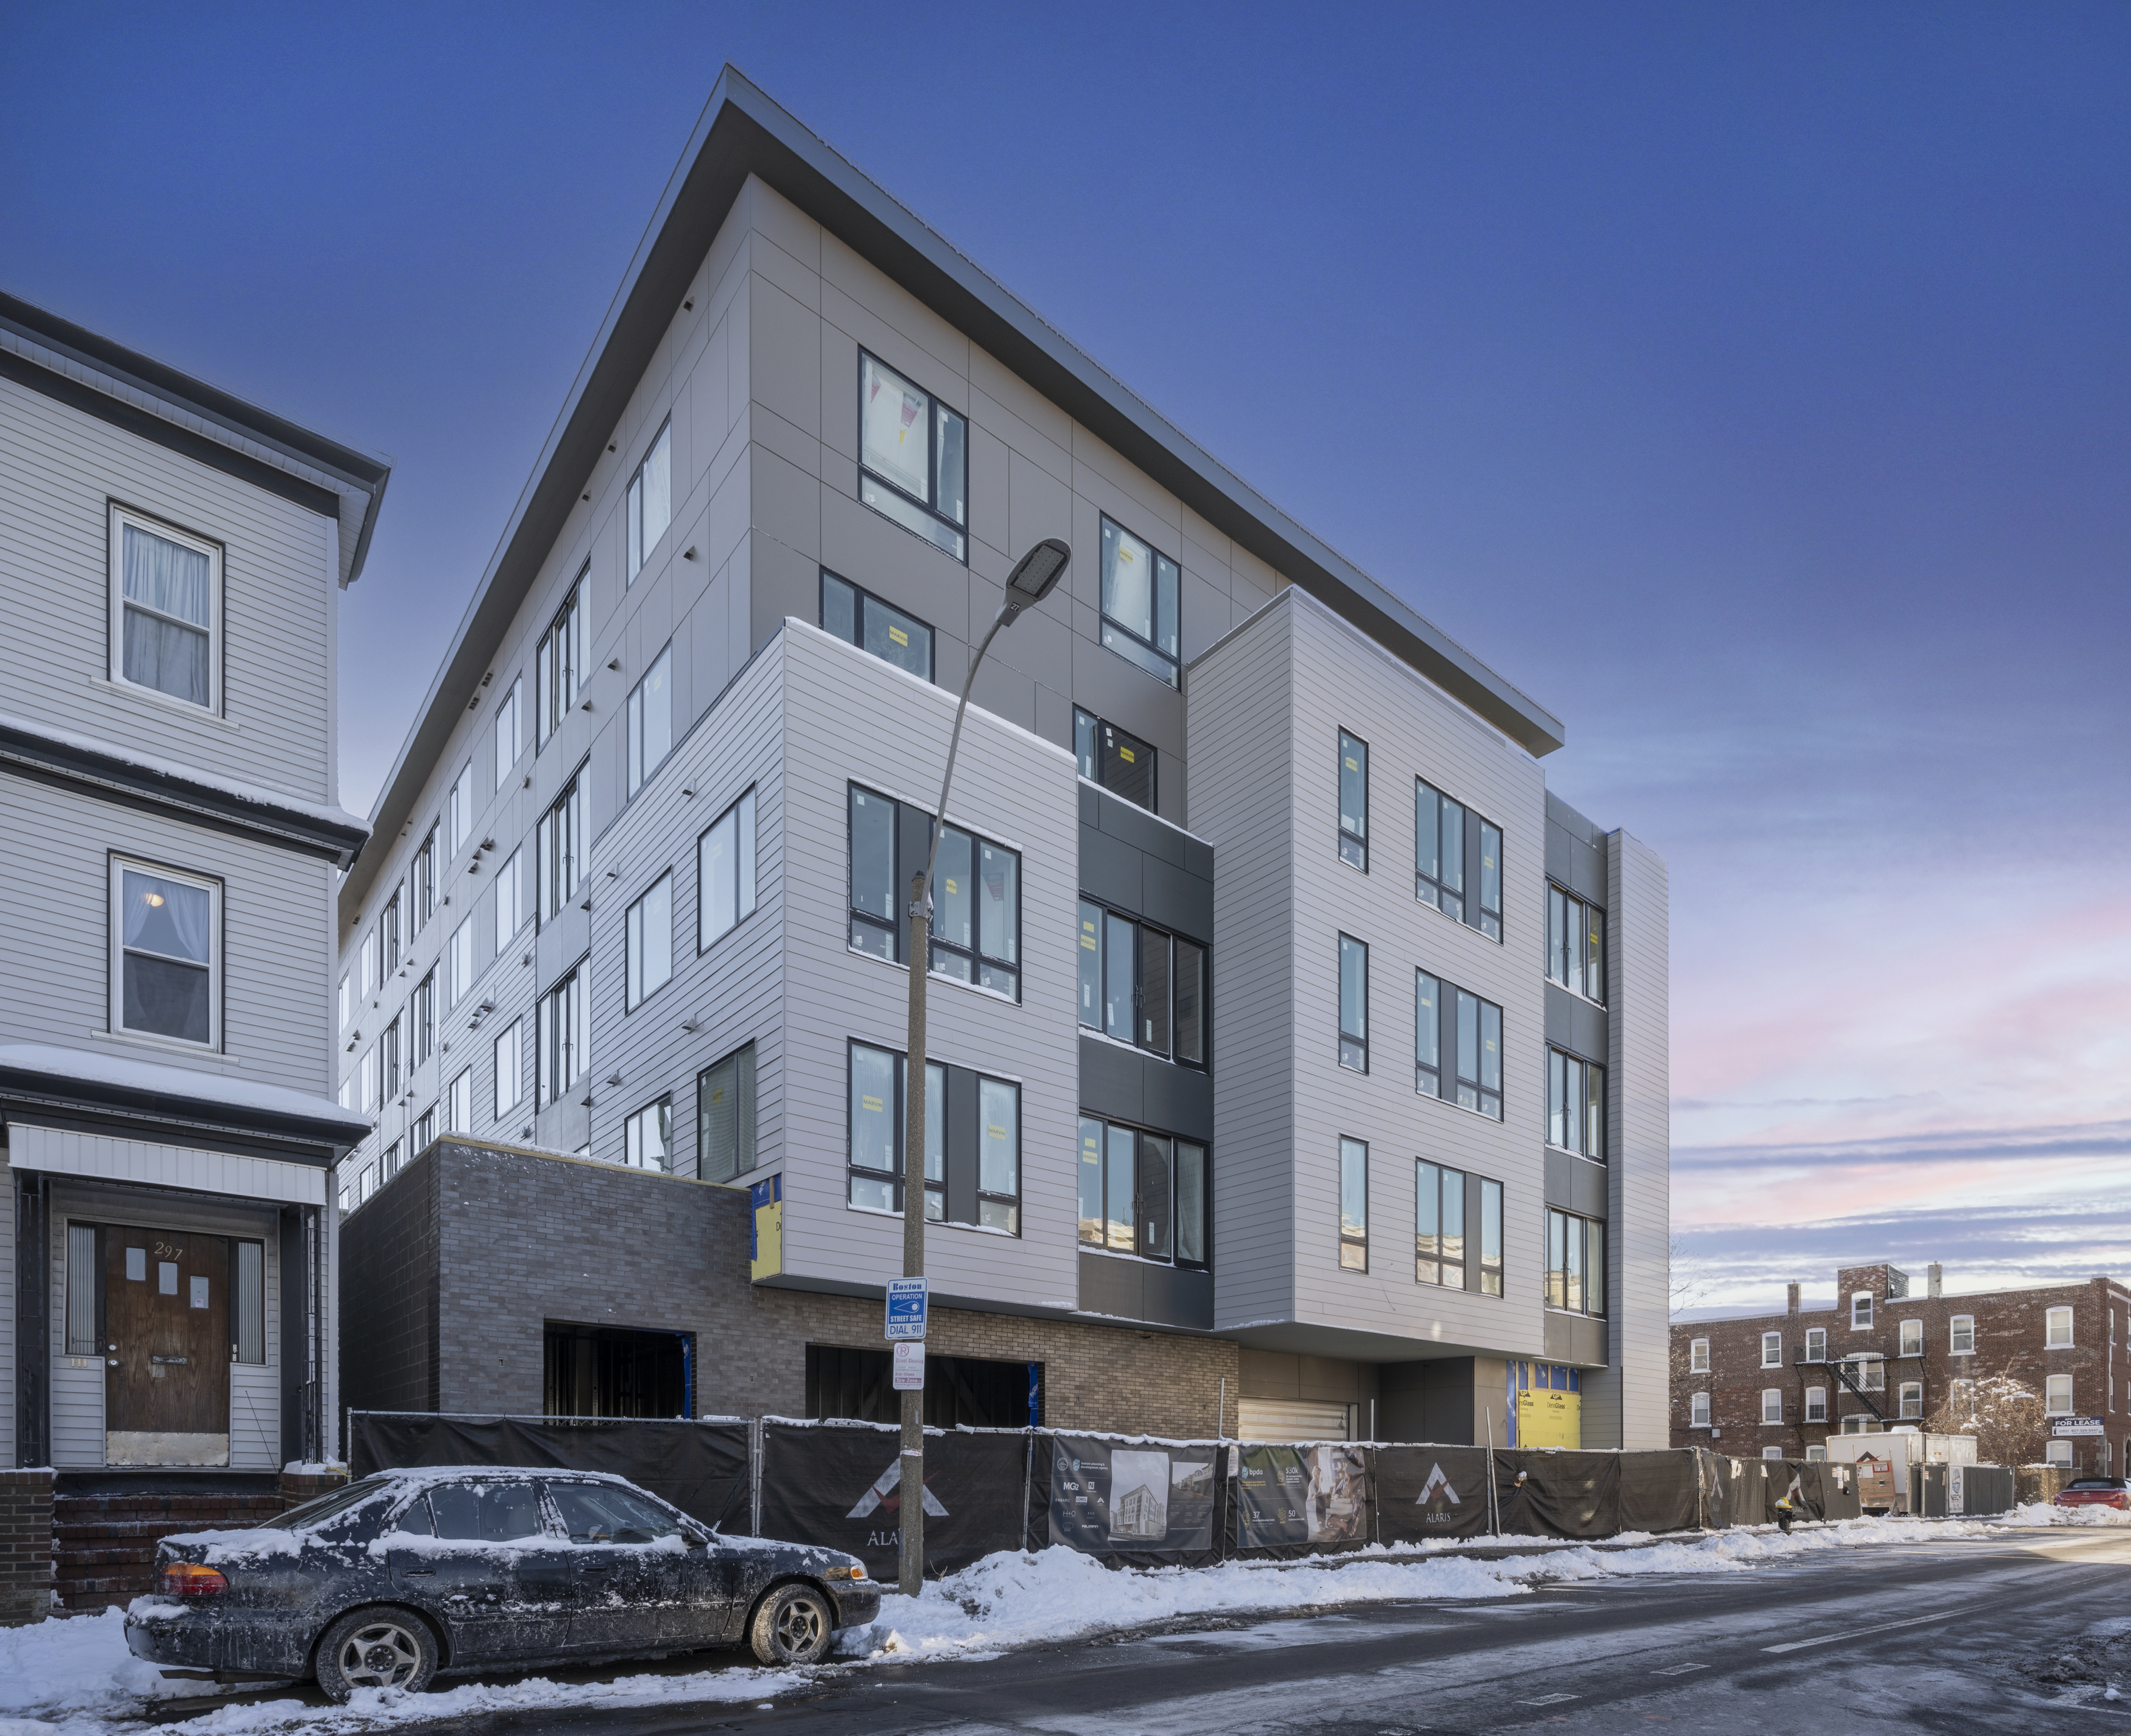 The Two Eight Seven Luxury Condos in East Boston